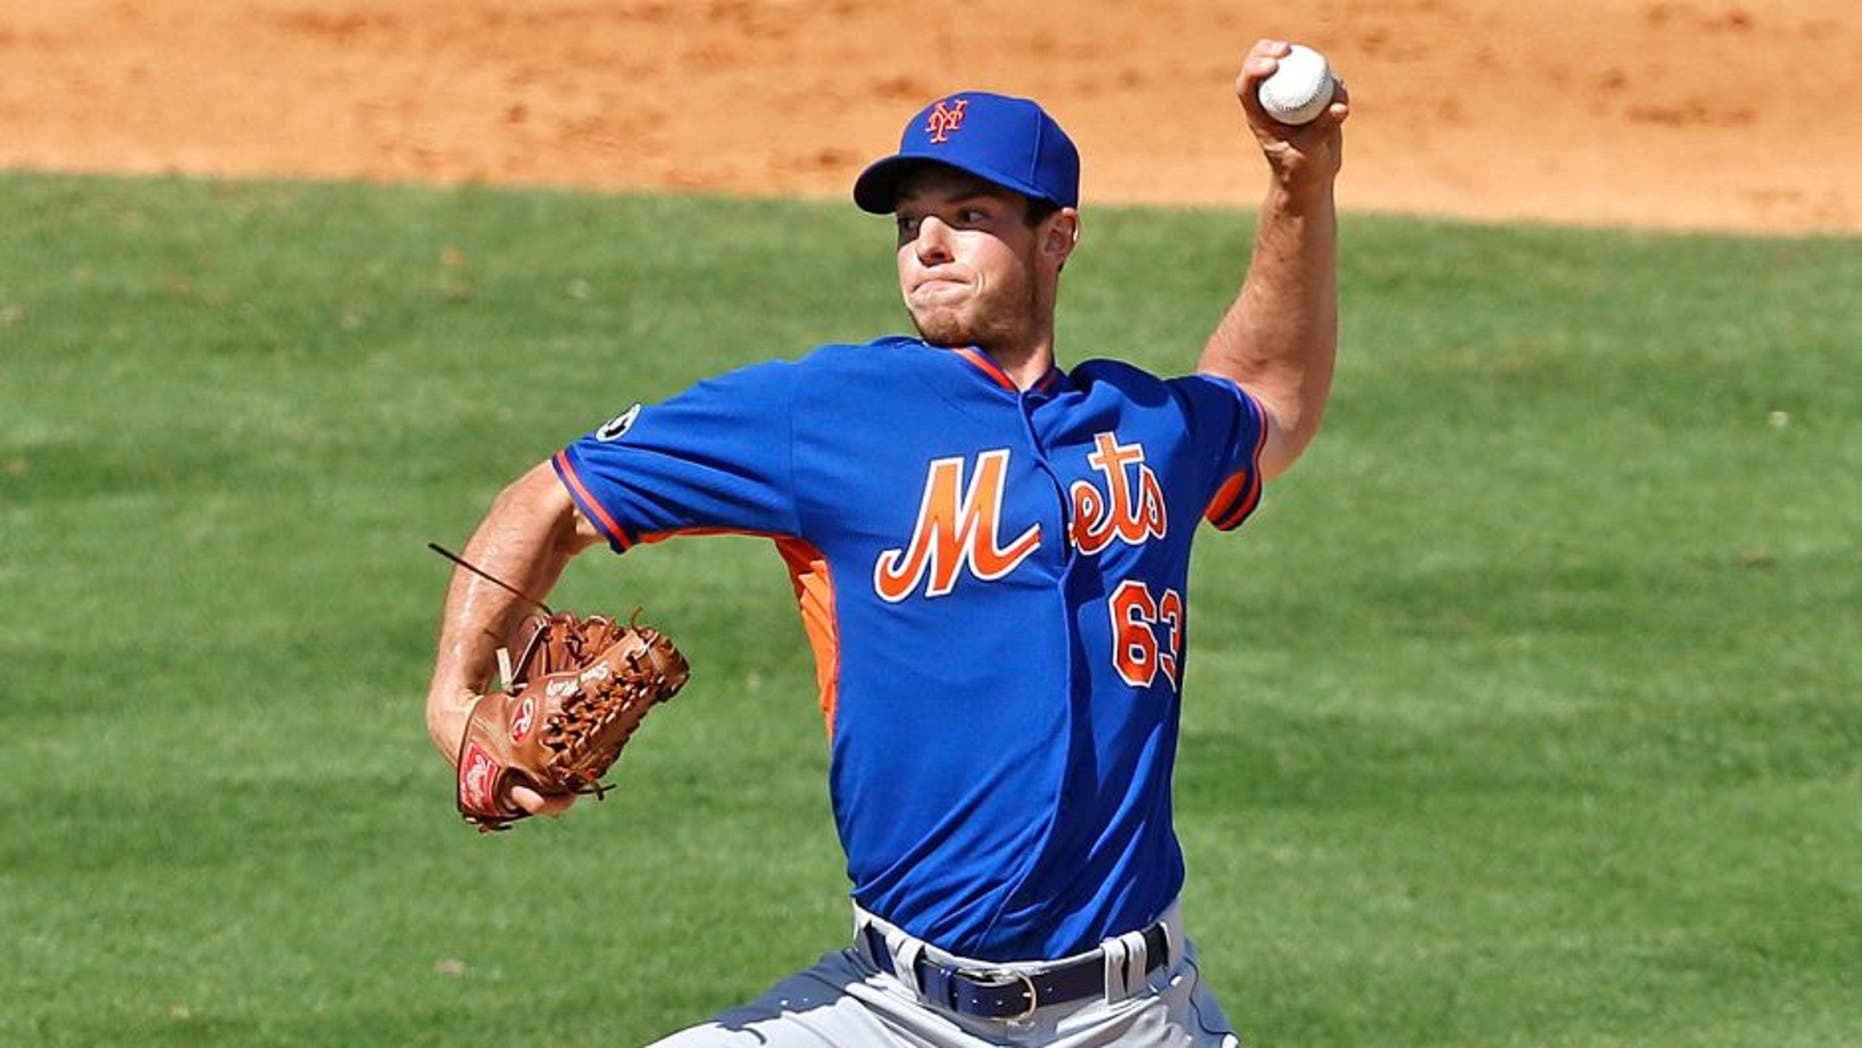 JUPITER, FL - MARCH 2: Steven Matz #63 of the New York Mets throws the ball against the St Louis Cardinals during a spring training game at Roger Dean Stadium on March 2, 2014 in Jupiter, Florida. The Cardinals defeated the Mets 7-1. (Photo by Joel Auerbach/Getty Images)